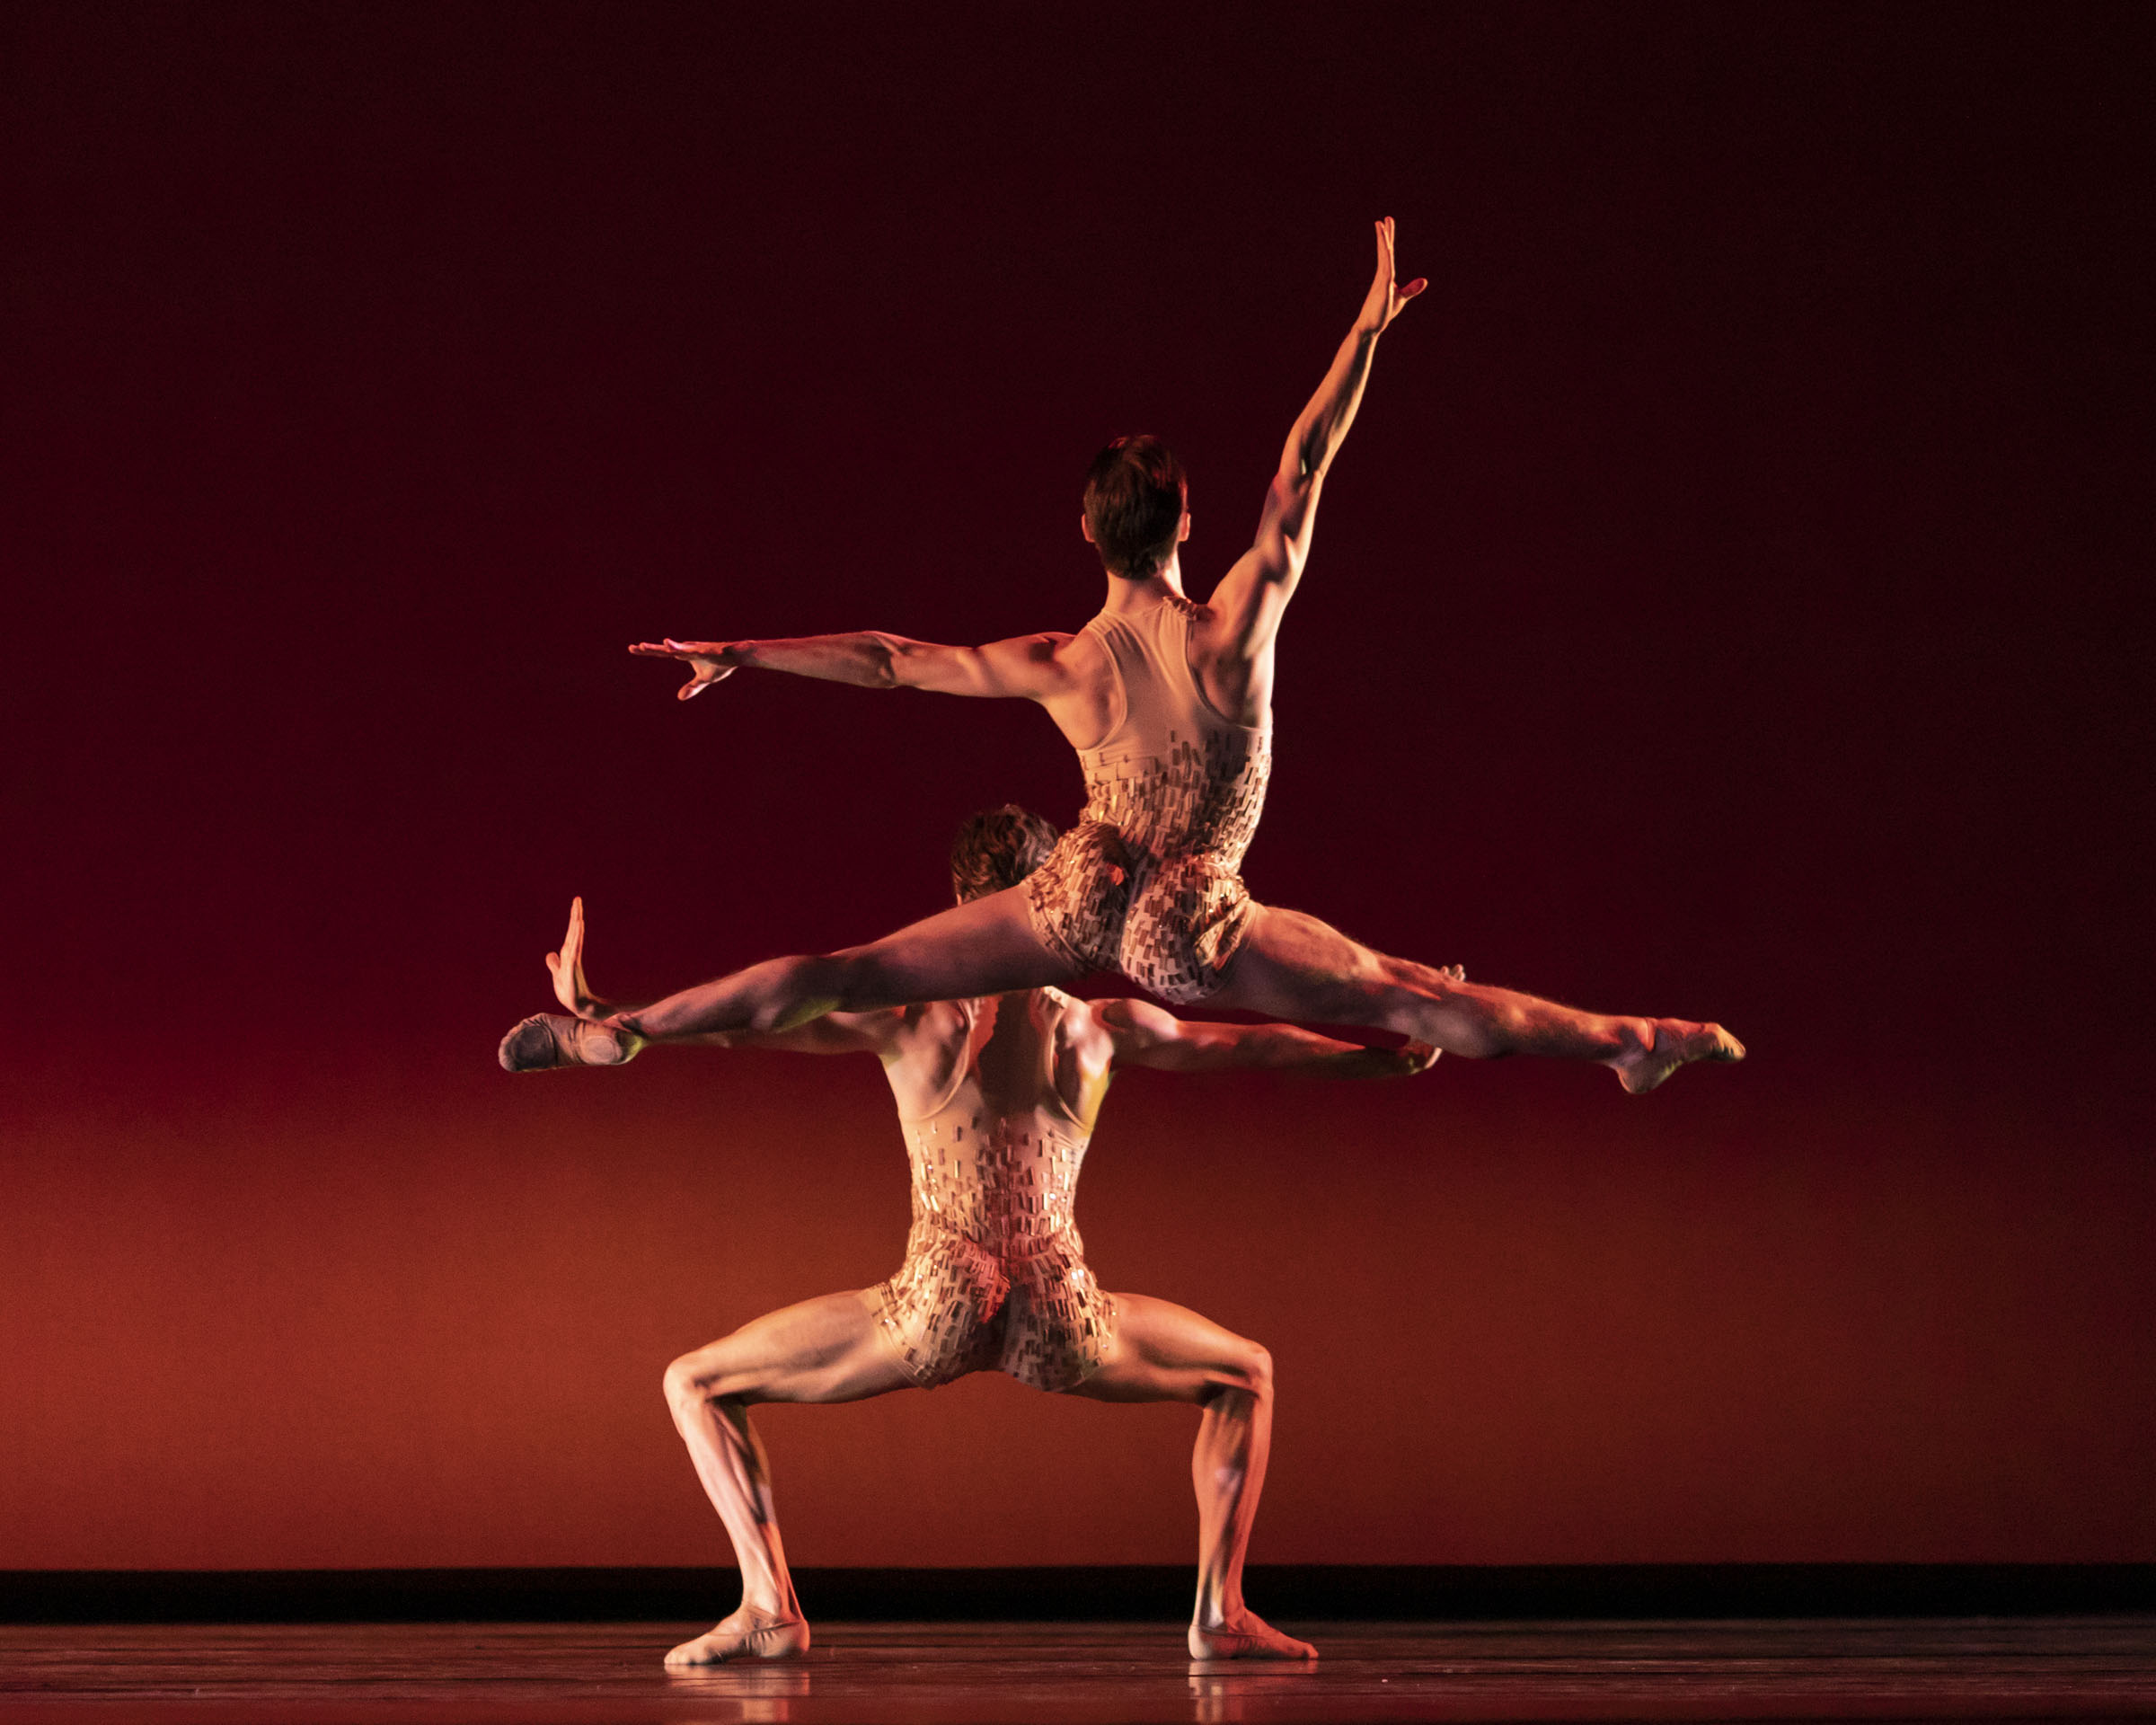 'Within the Golden Hour' part of '21st Century Choreographers' at The Royal Opera House.